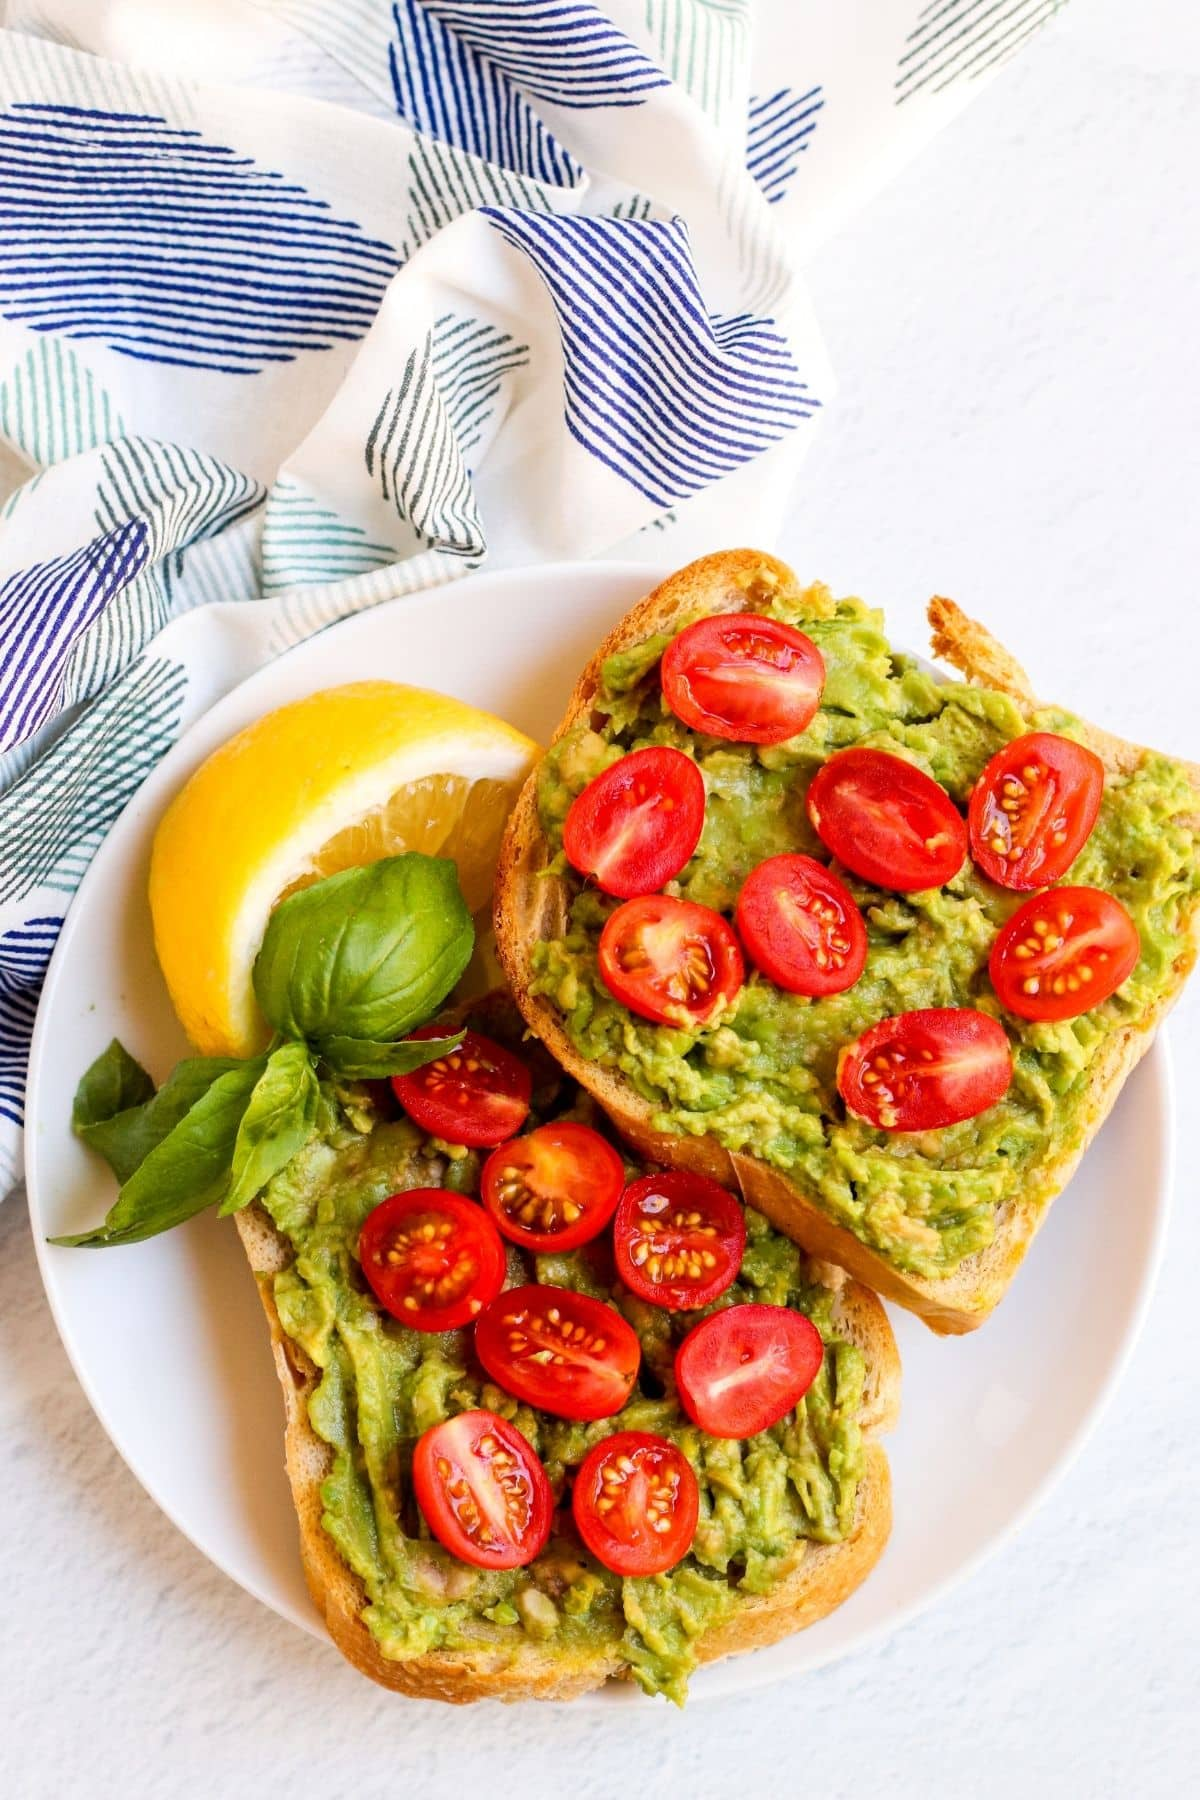 Two slices of avocado toast on a plate topped with halved cherry tomatoes